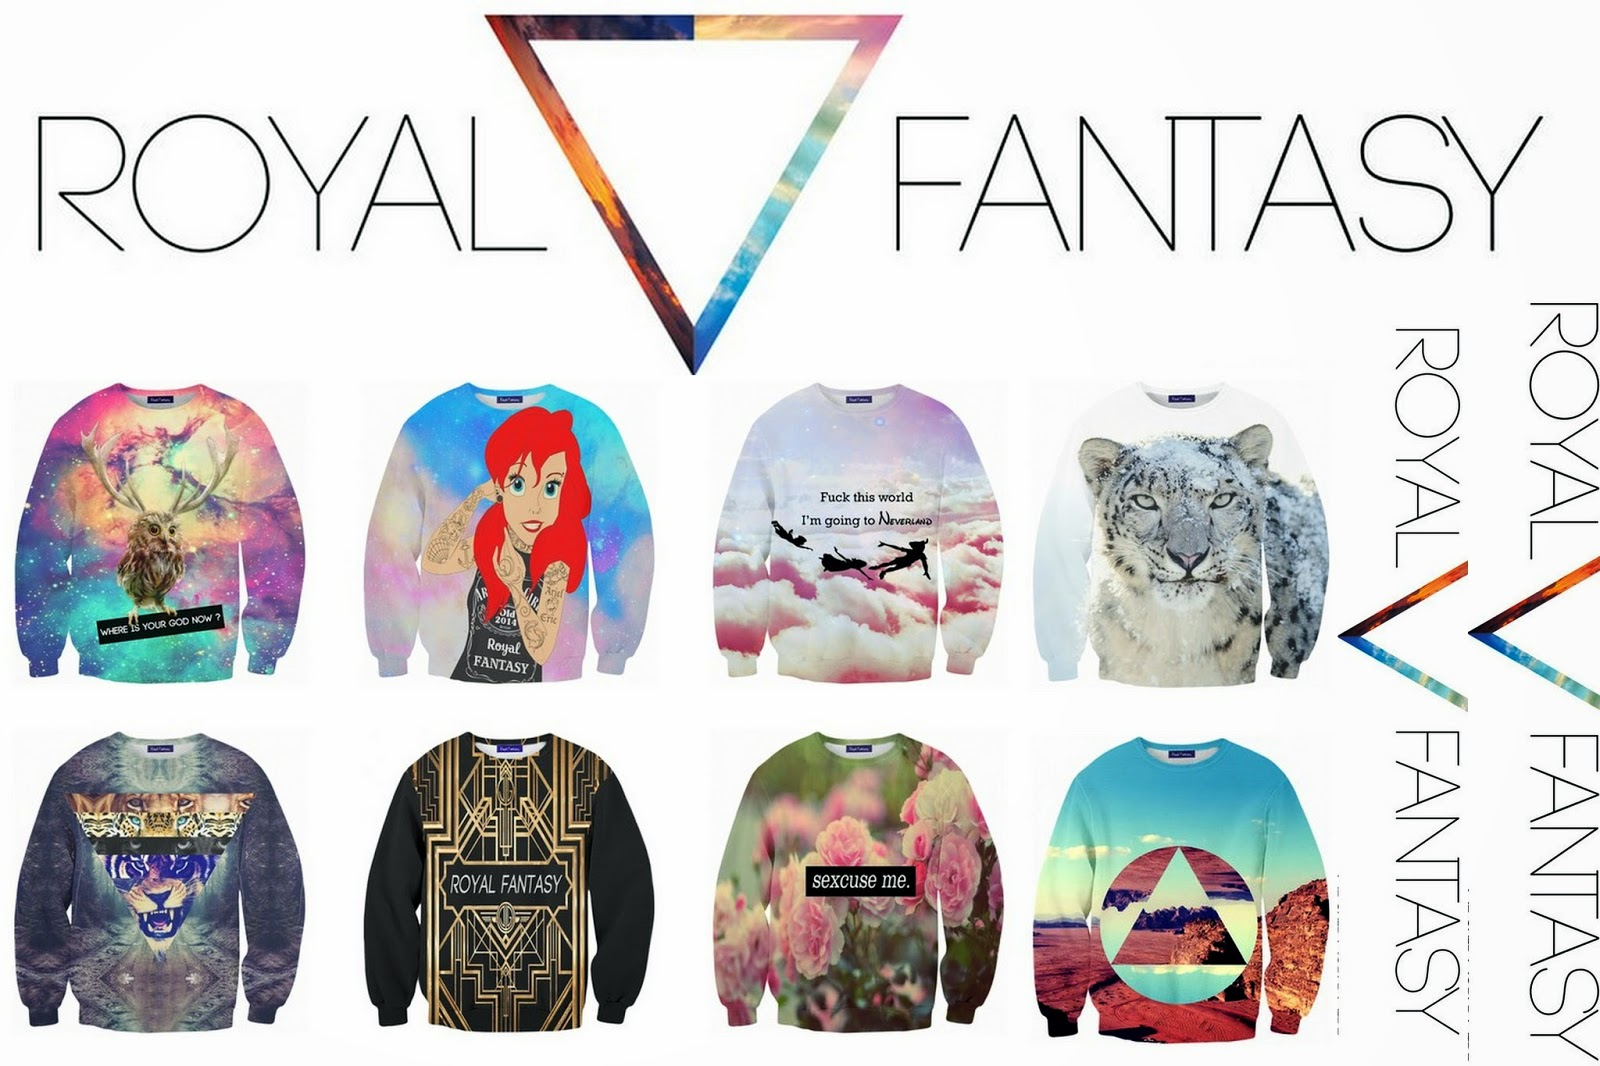 http://www.syriouslyinfashion.com/2014/04/royal-fantasy-digital-print-sweaters-t.html